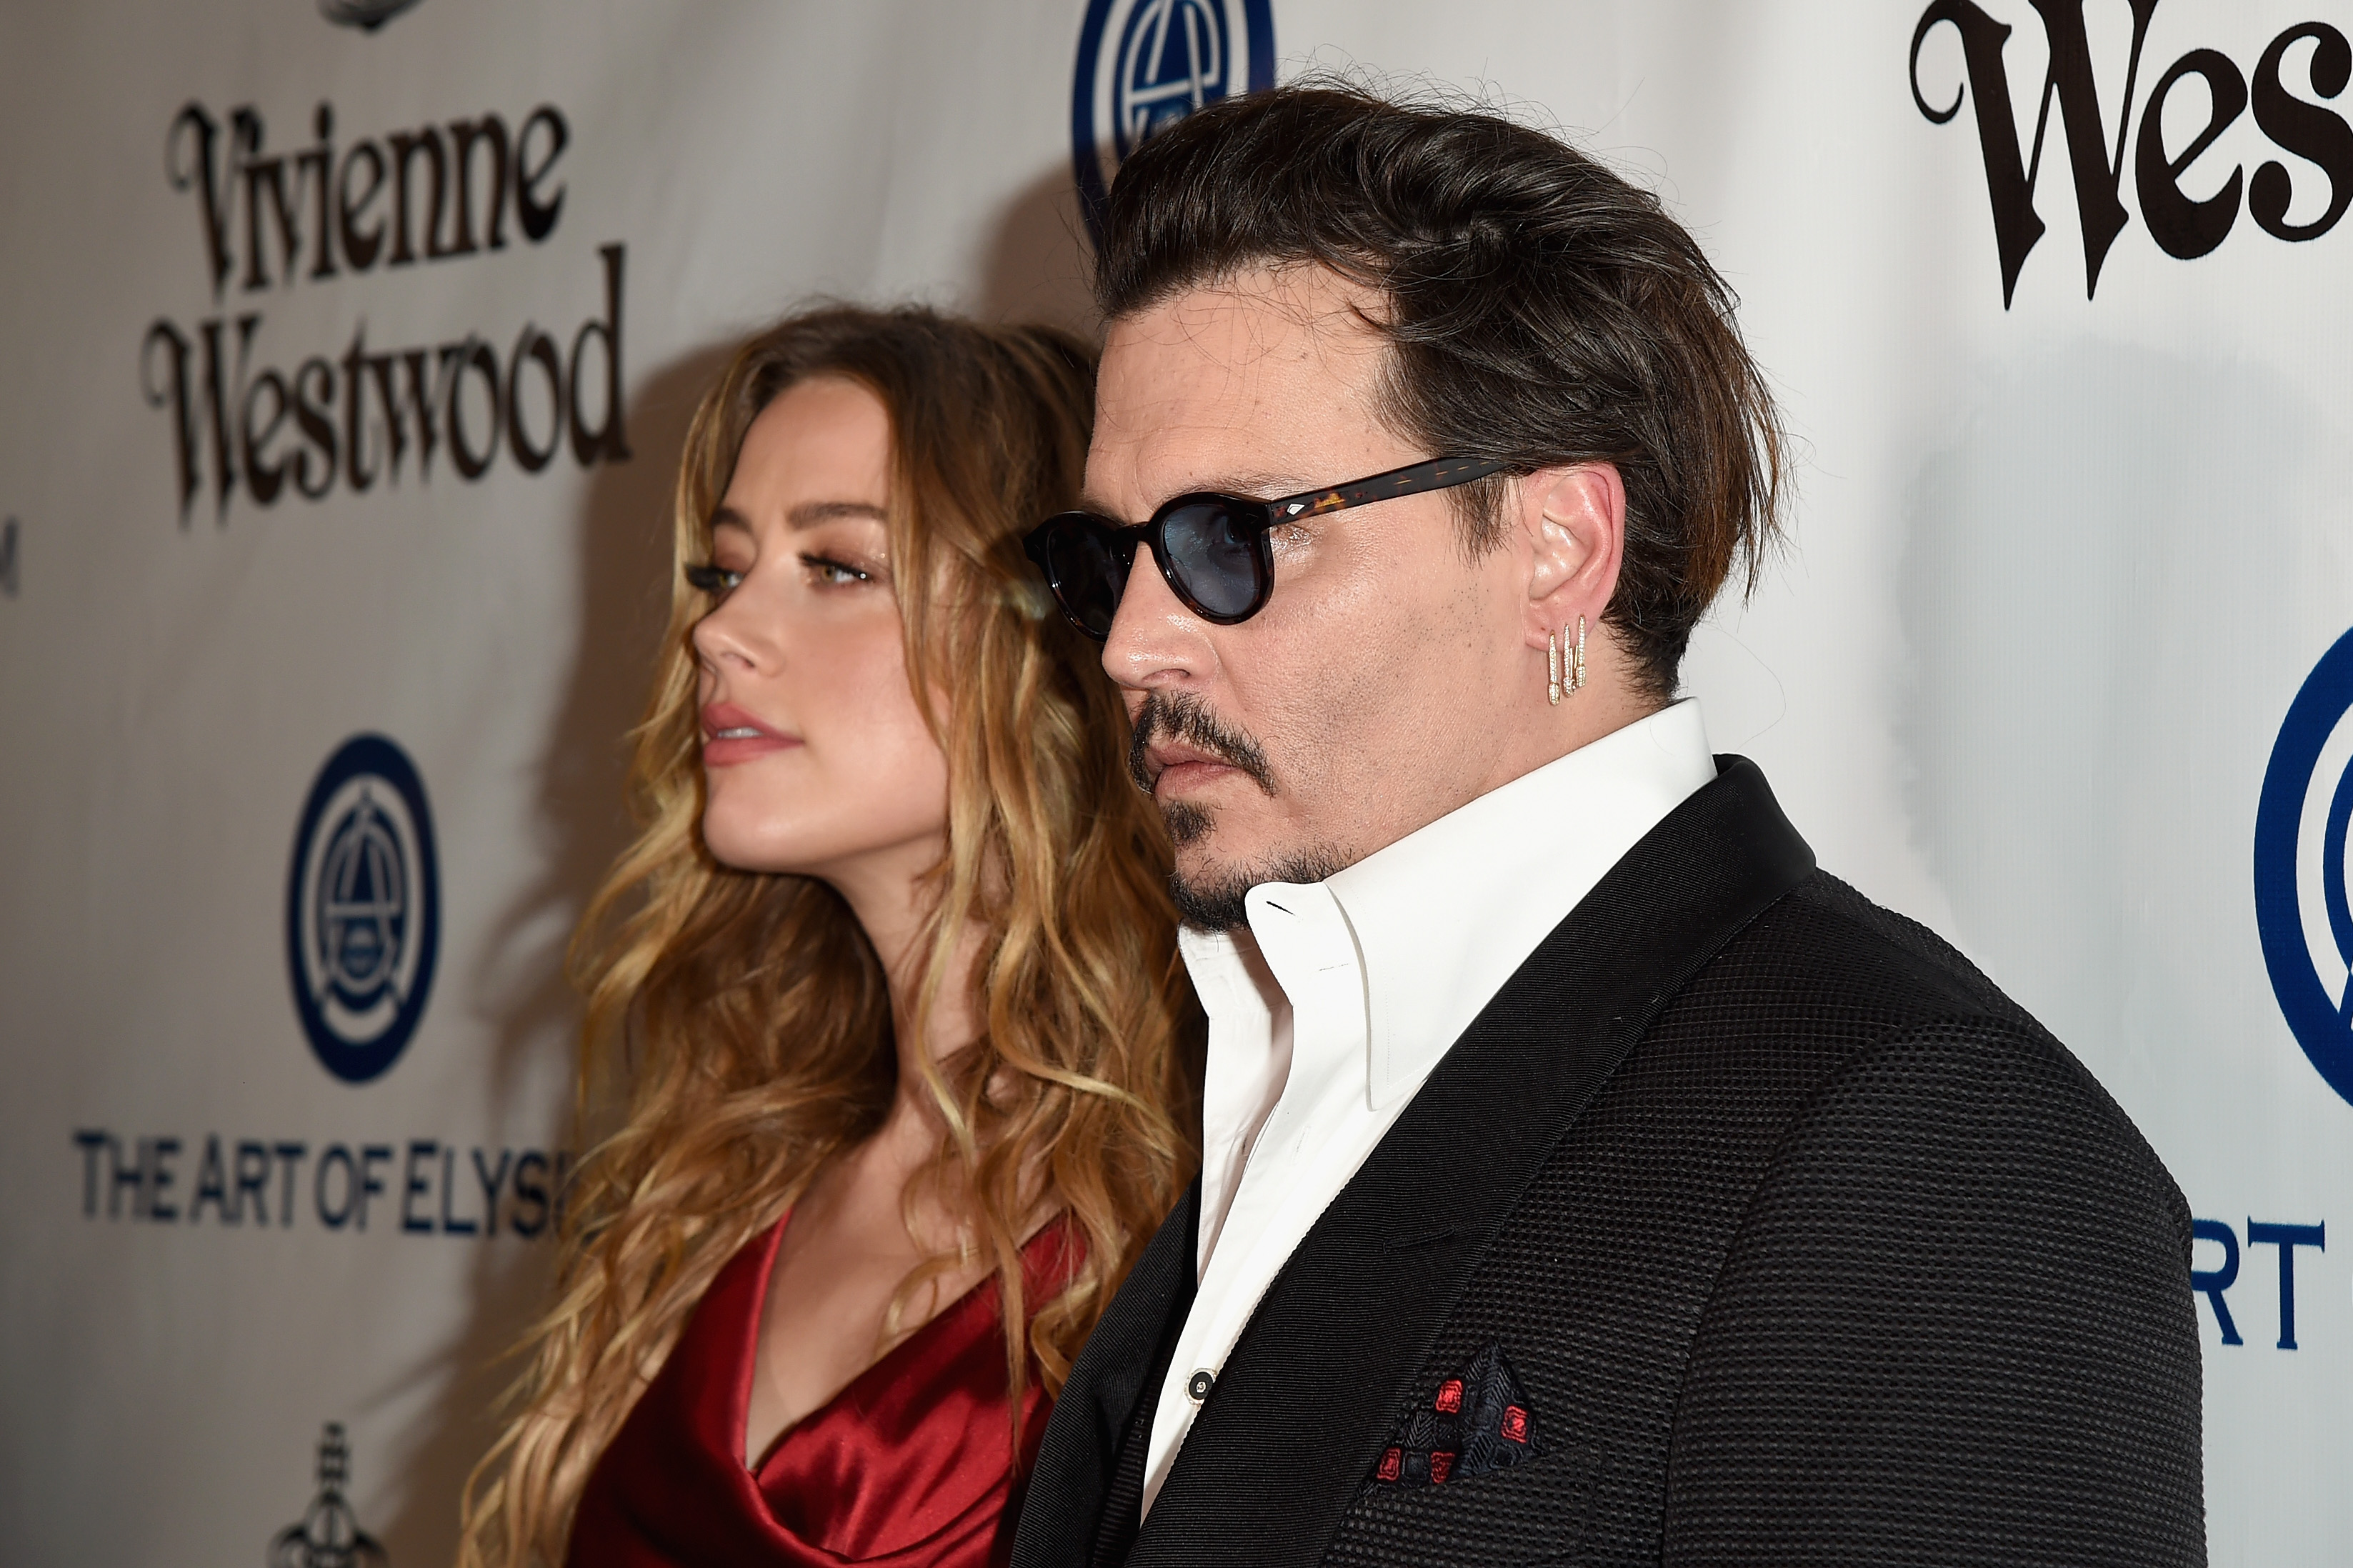 Johhny Depp Given Restraining Order Amid Domestic Abuse Allegations deppheard33